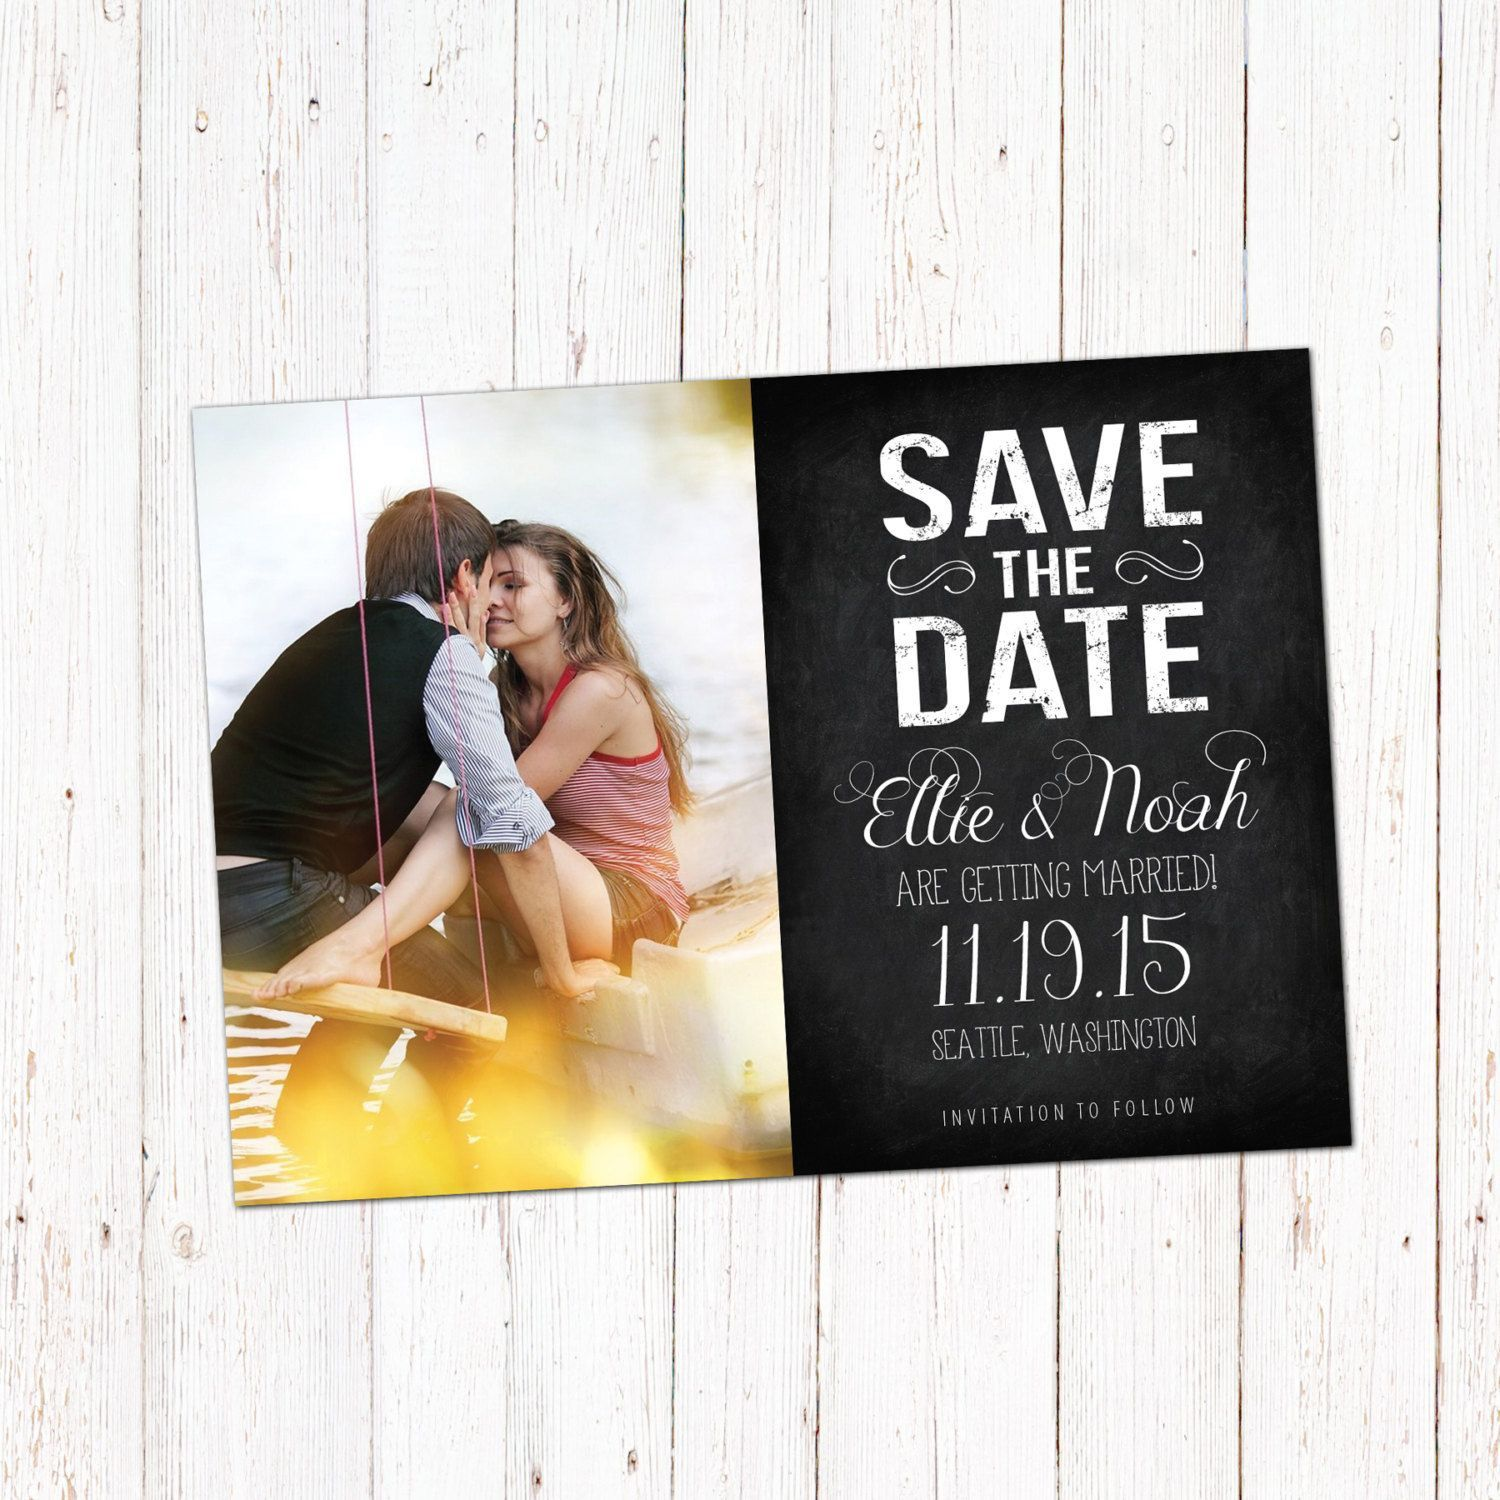 001 Amazing Save The Date Template Photoshop Picture  Adobe CardFull